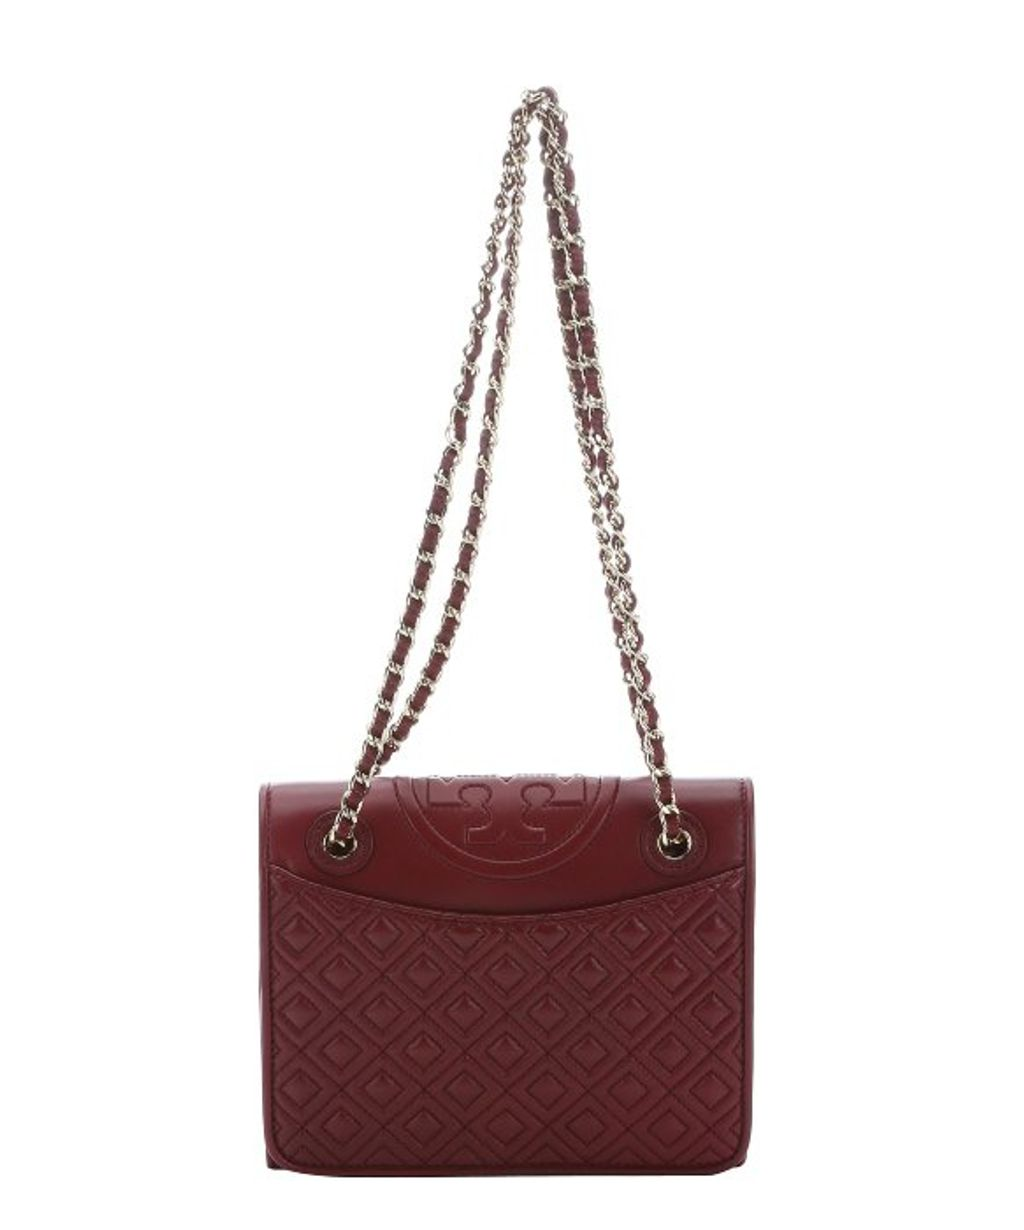 tory-burch-pink-fleming-quilted-mini-flap-shoulder-bag-product-1-18285385-1-926386106-normal.jpeg